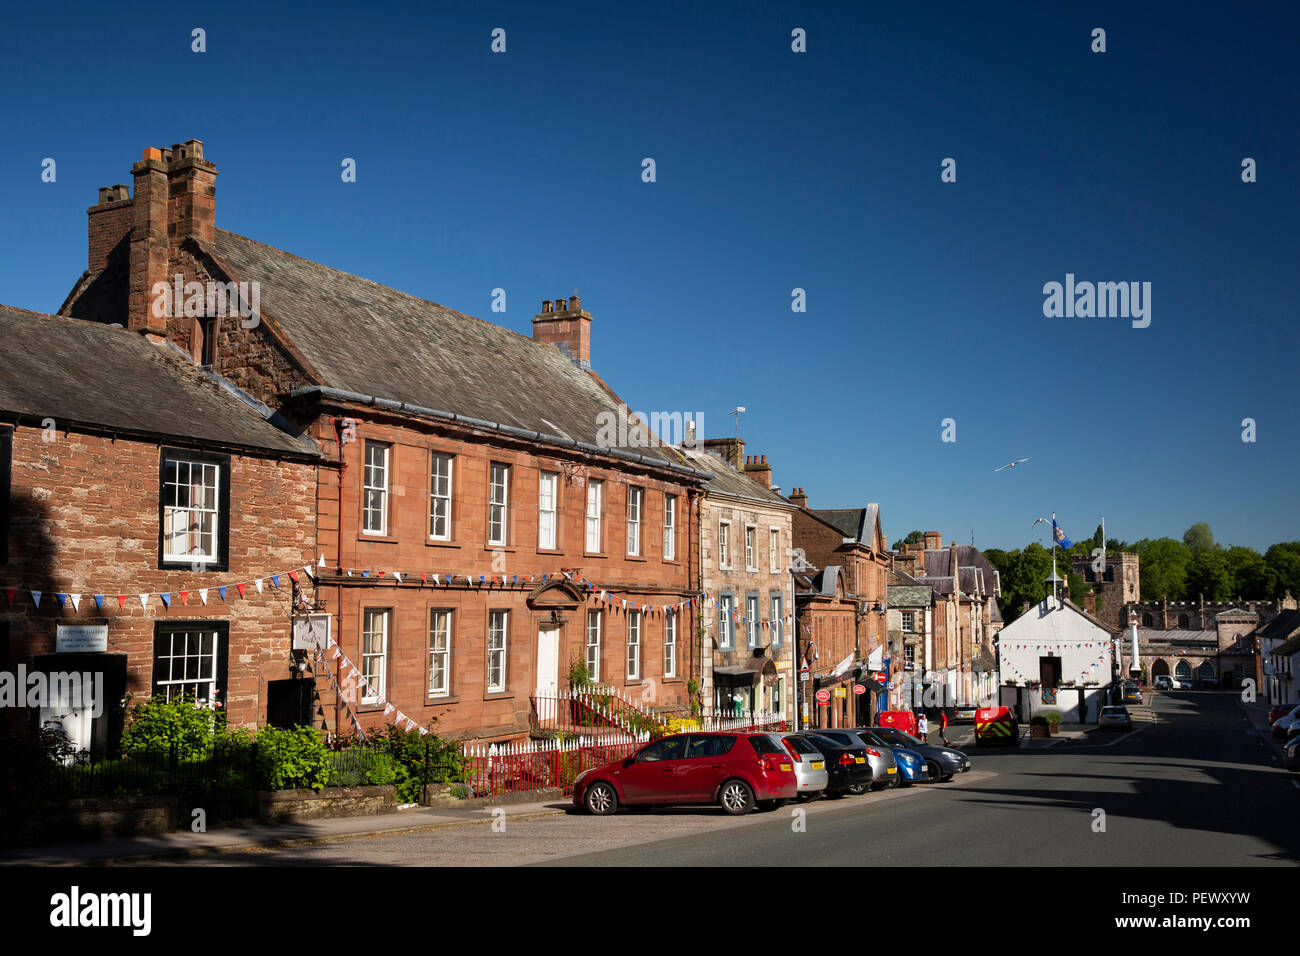 UK, Cumbria, Eden Valley, Appleby, Boroughgate, The Red House and neighbouring historic houses leading down to the Moot Hall - Stock Image